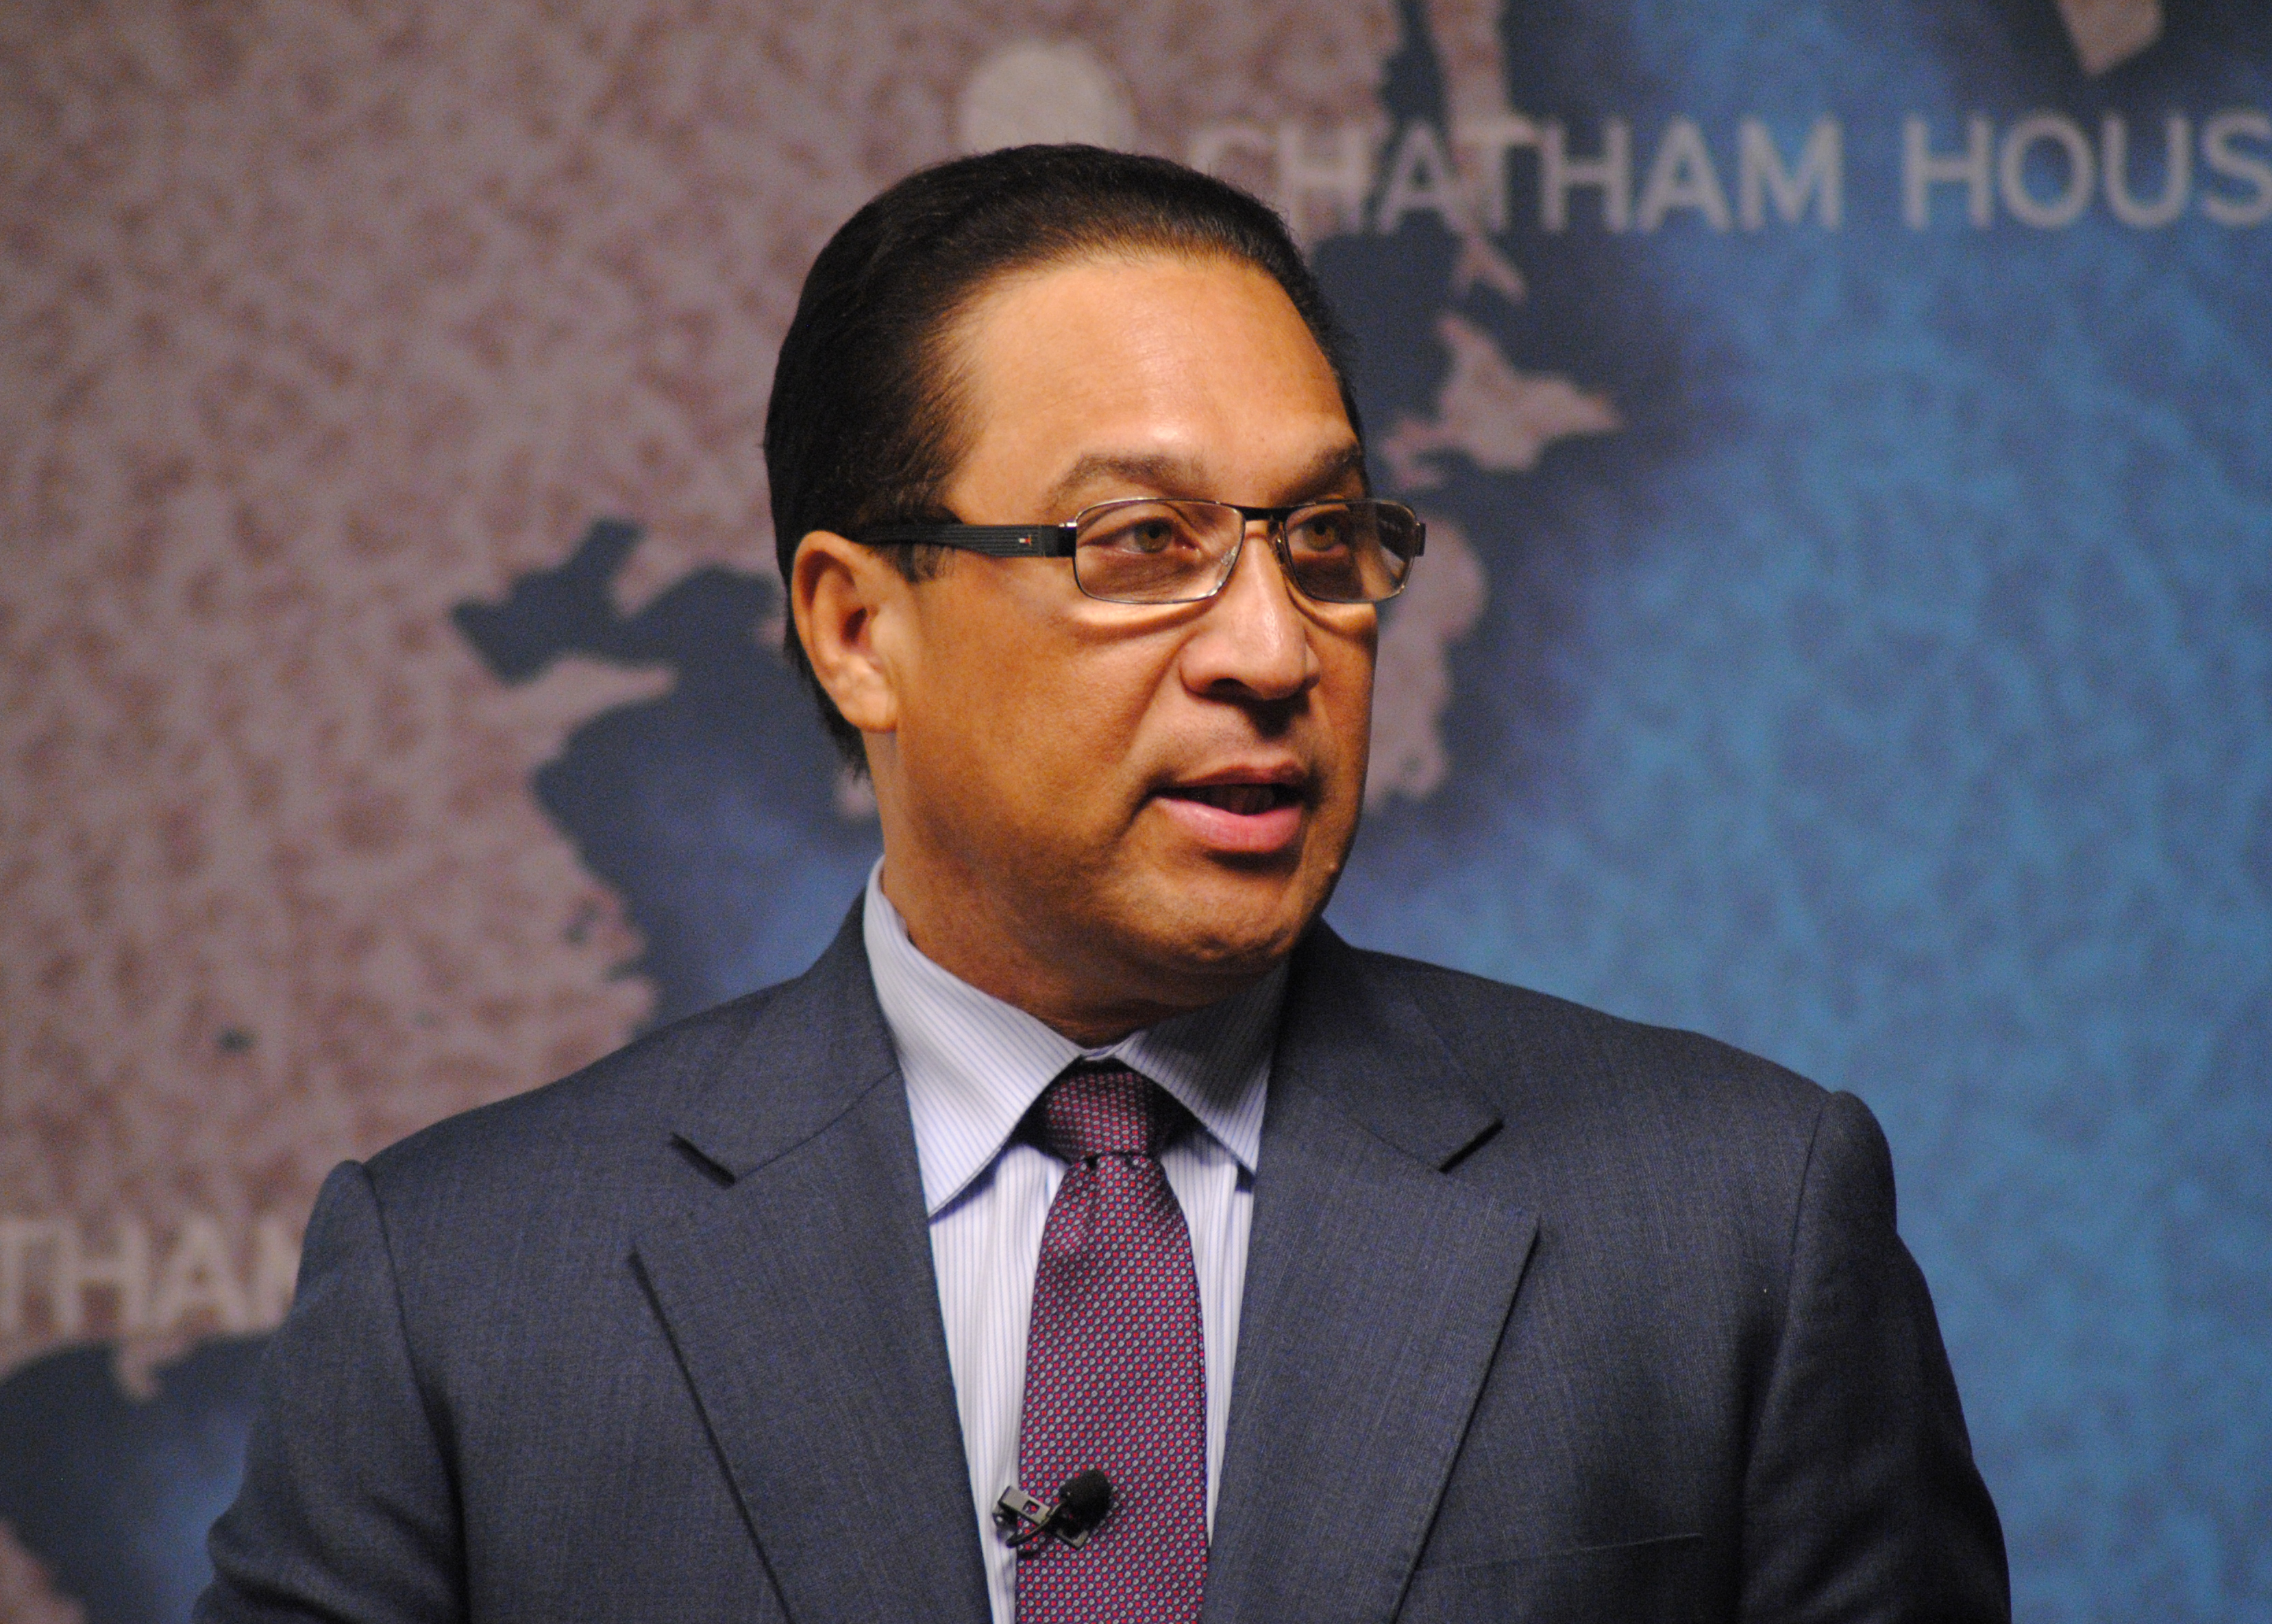 Premier Alden McLaughlin of the Cayman Islands (photo credit: Chatham House/flickr)